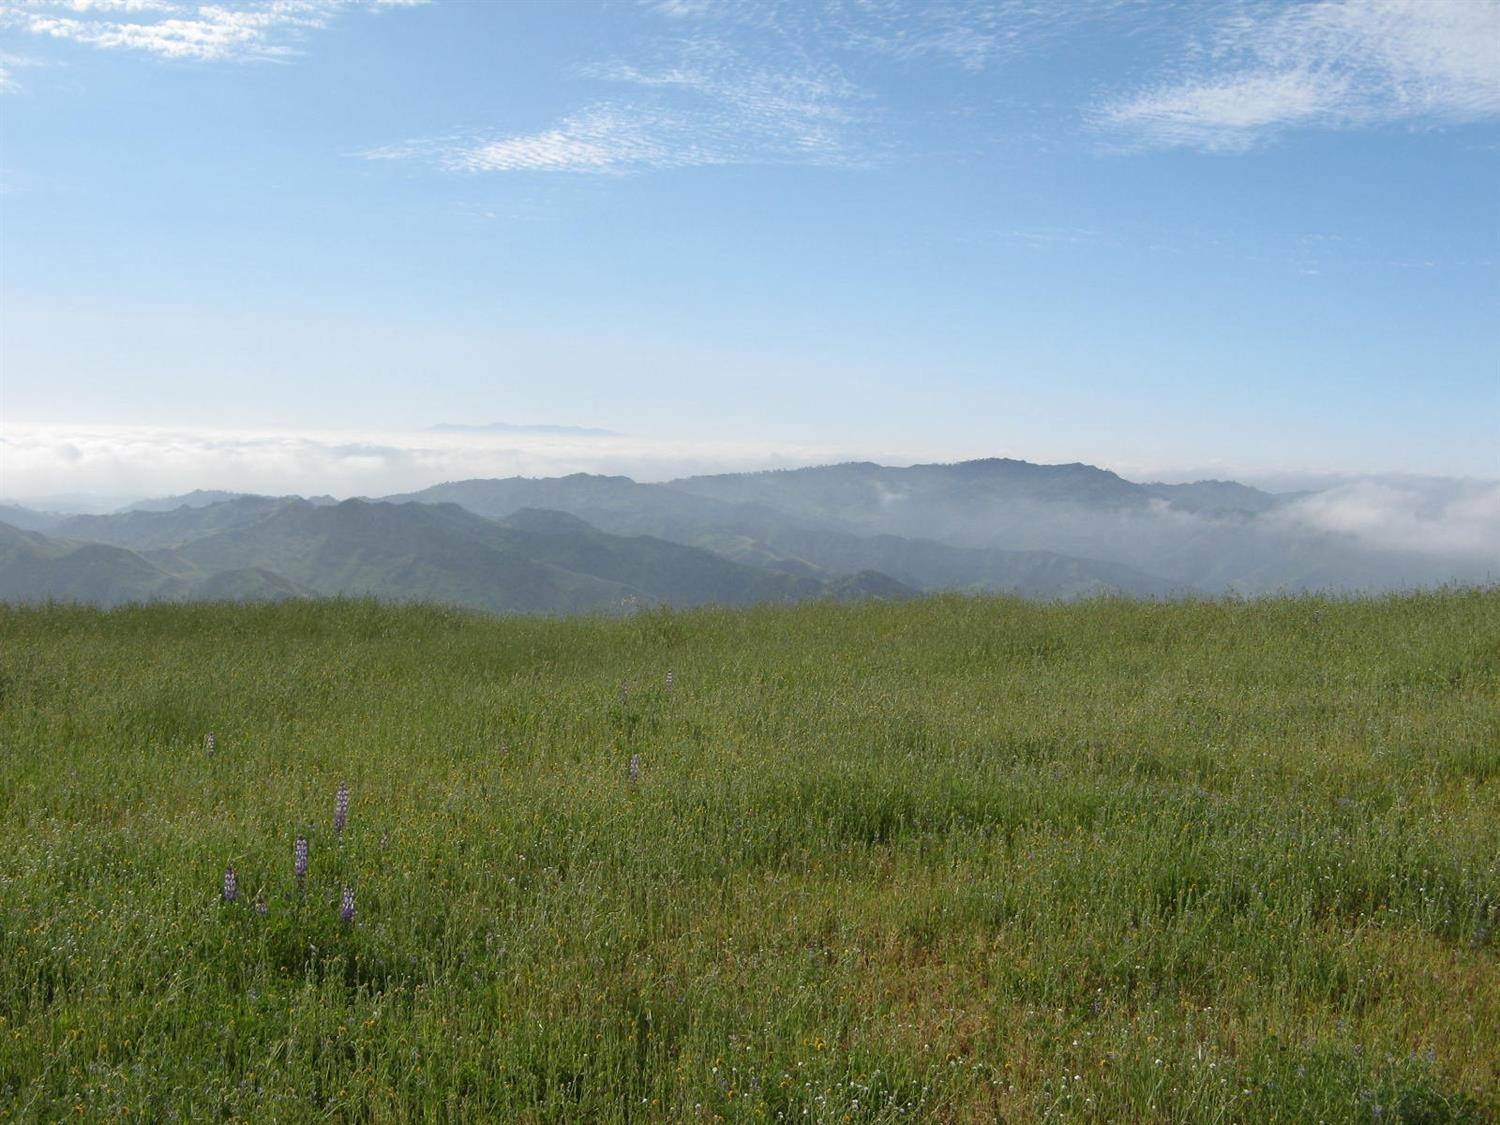 5. Lots / Acreage for Sale at Sulphur Mountain Road Ojai, California 93023 United States